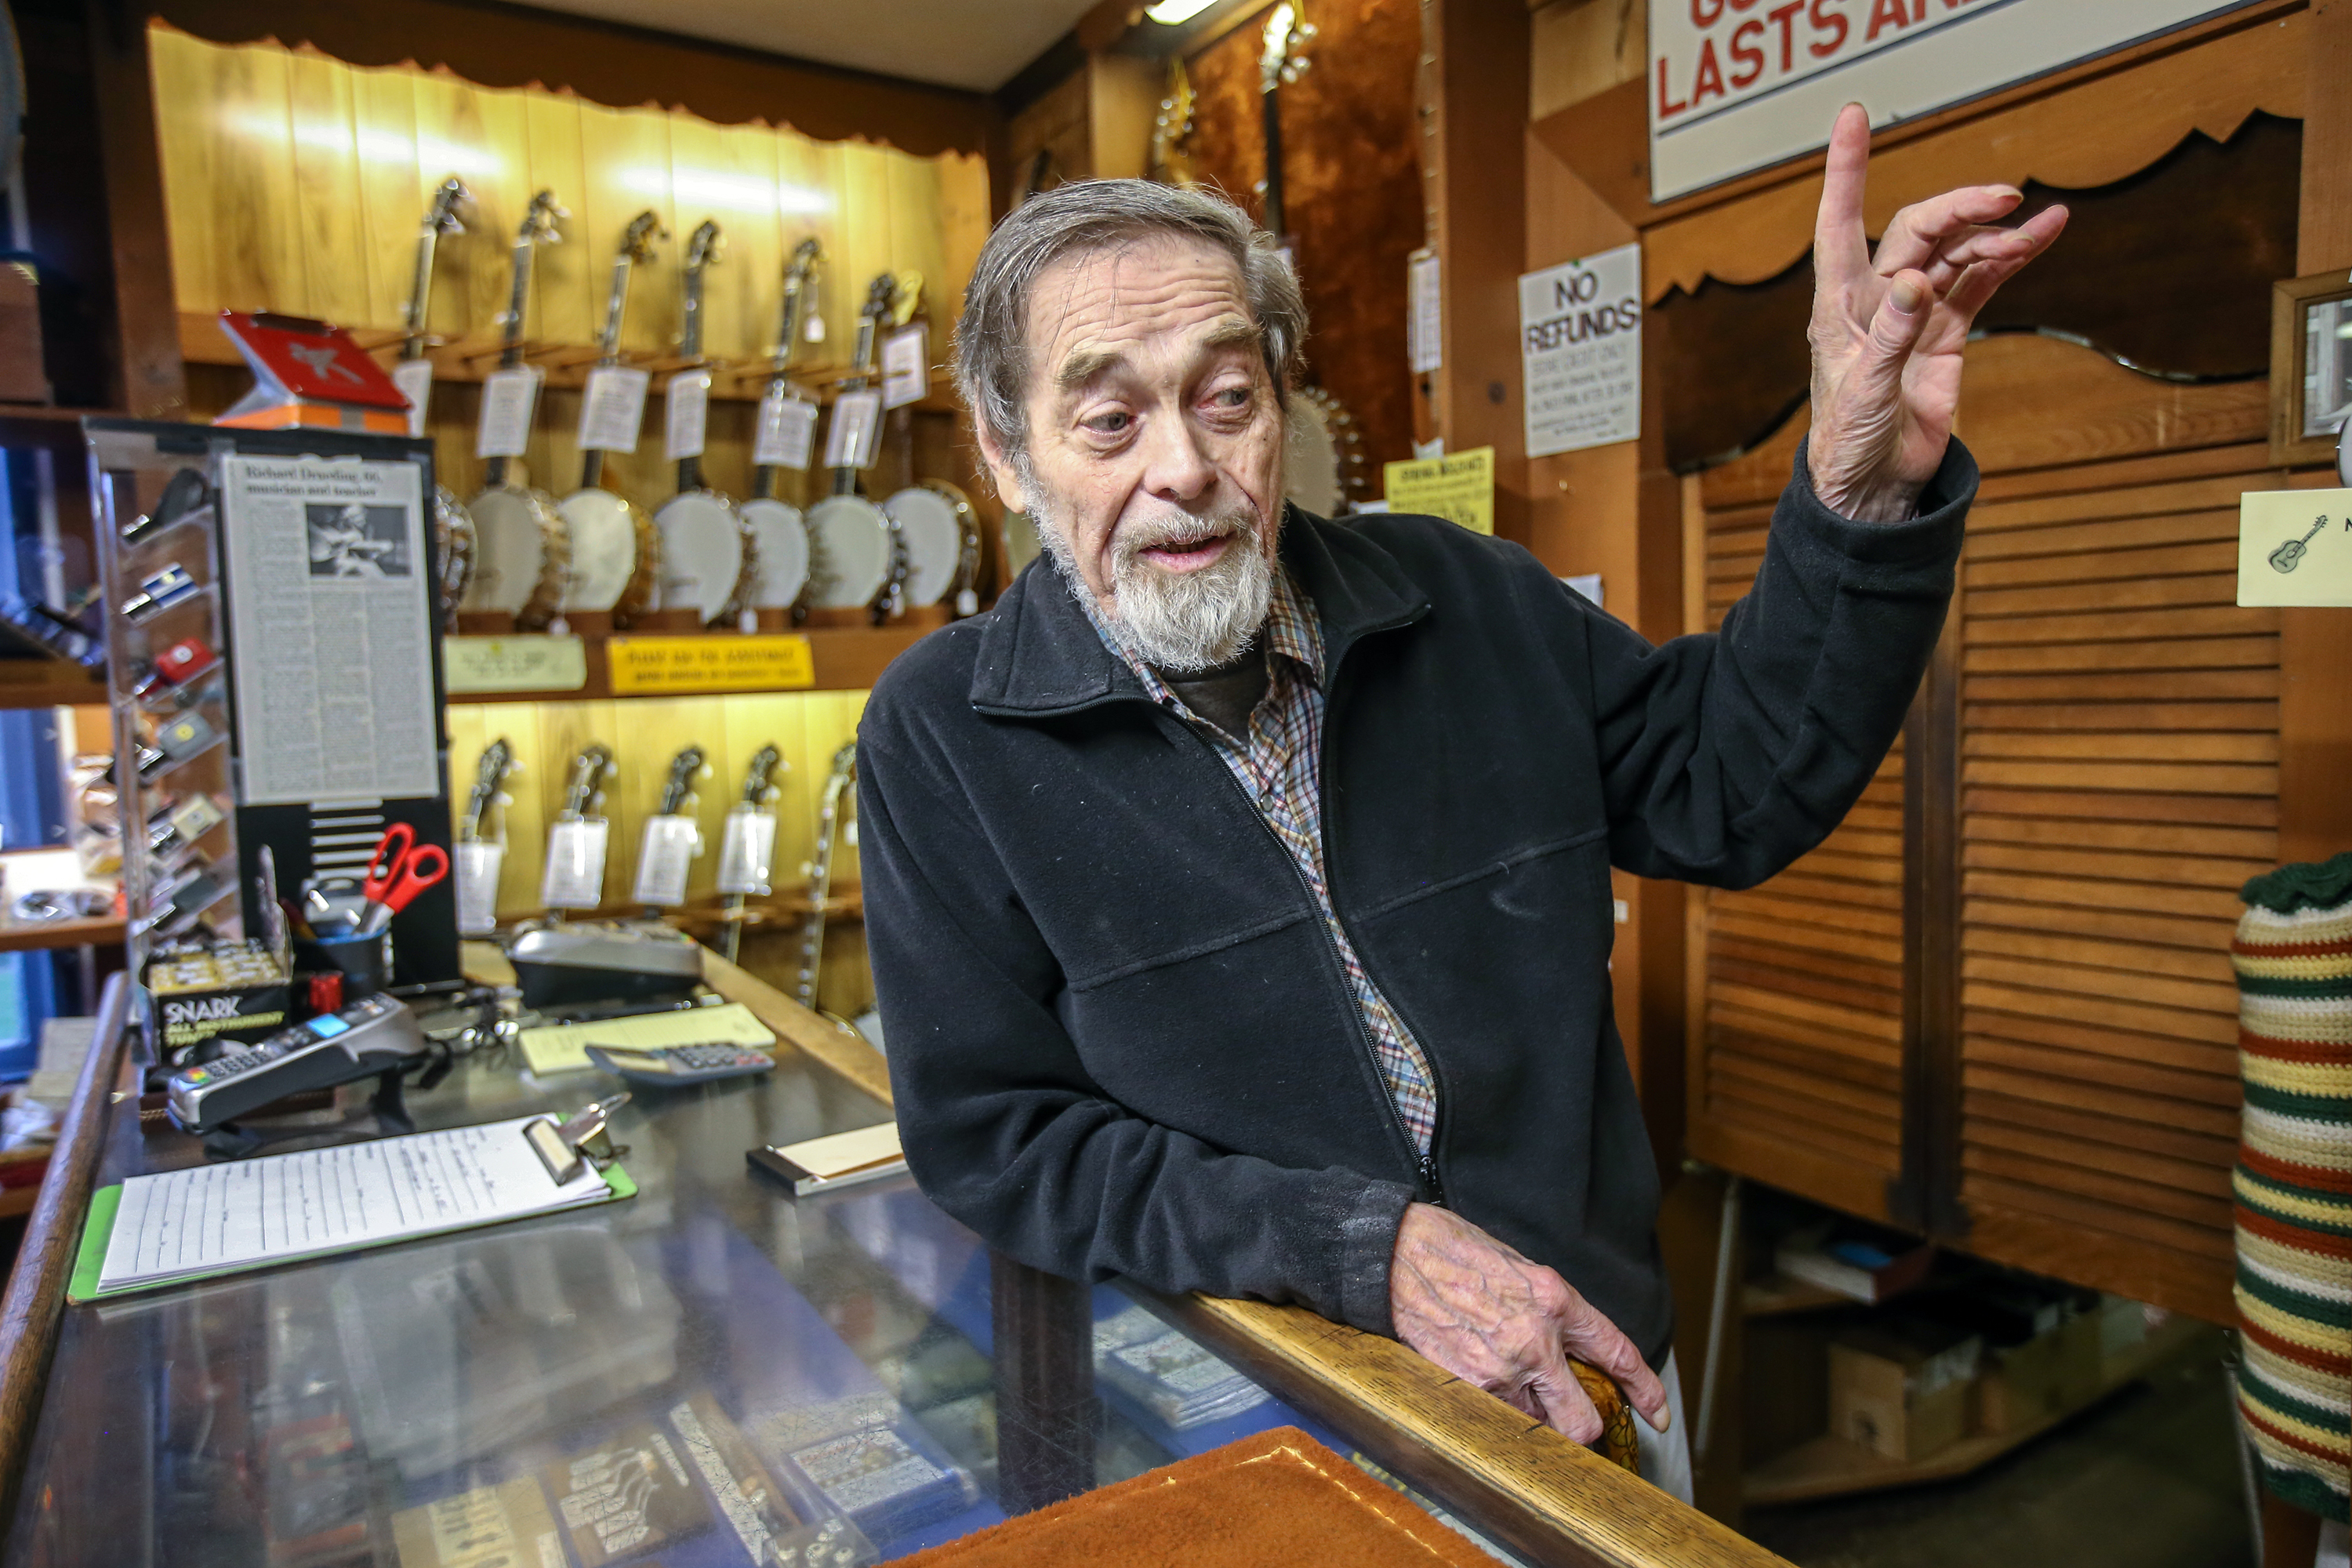 Karl Dieterichs, who started the Bucks County Folk Music Shop with his wife Jackie, talks about the difference in buying a guitar from them or buying your guitar online or at a music chain store.